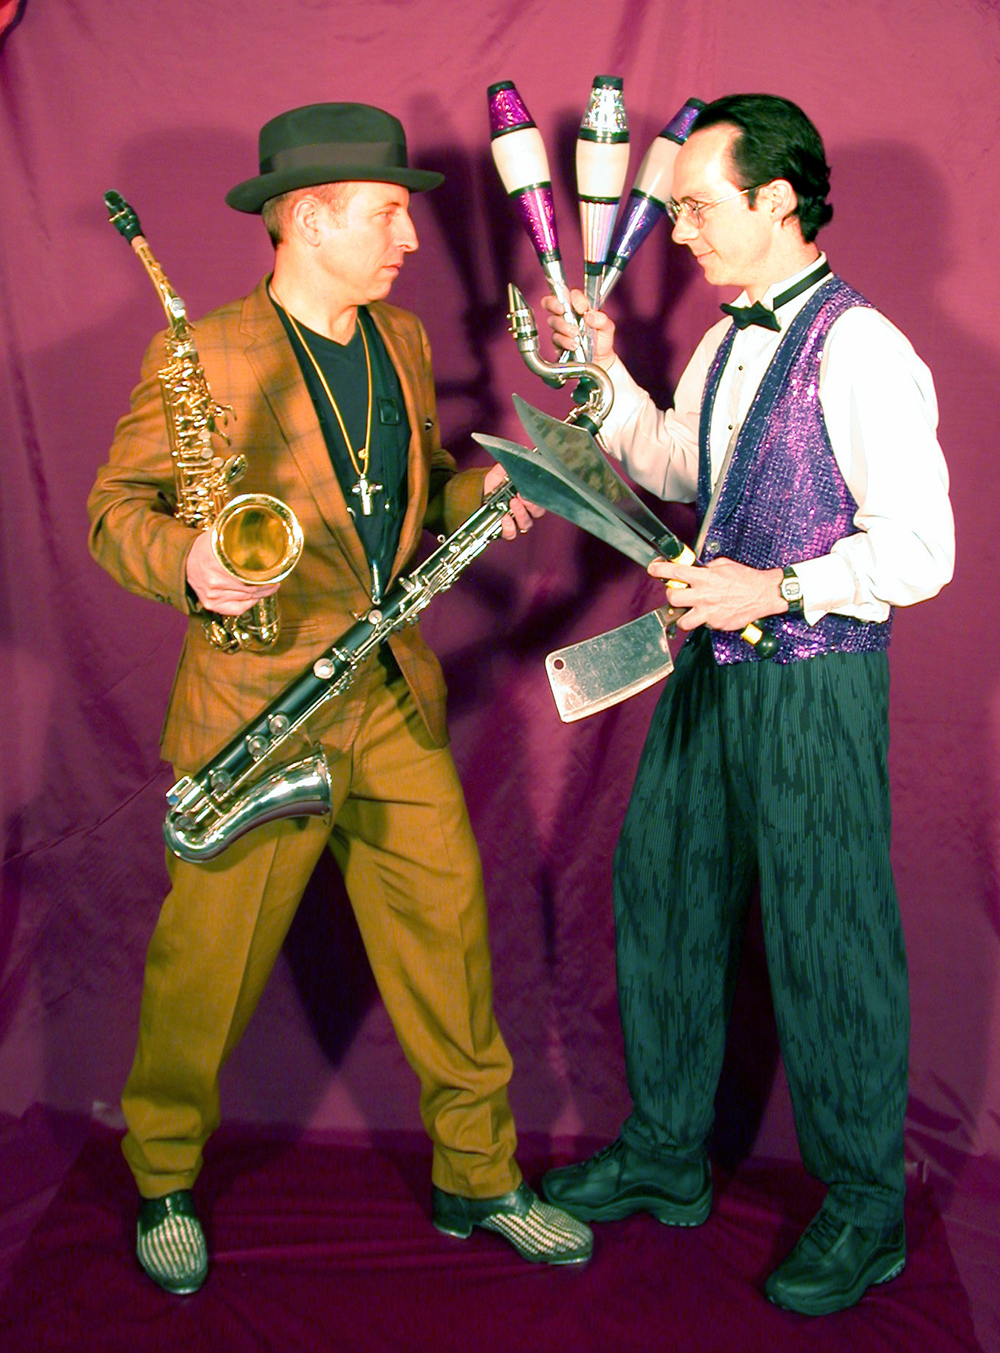 """JuggleMania"" at the Lied will feature the dancing musician Shoehorn (Michael Conley) and juggler Rhys Thomas."